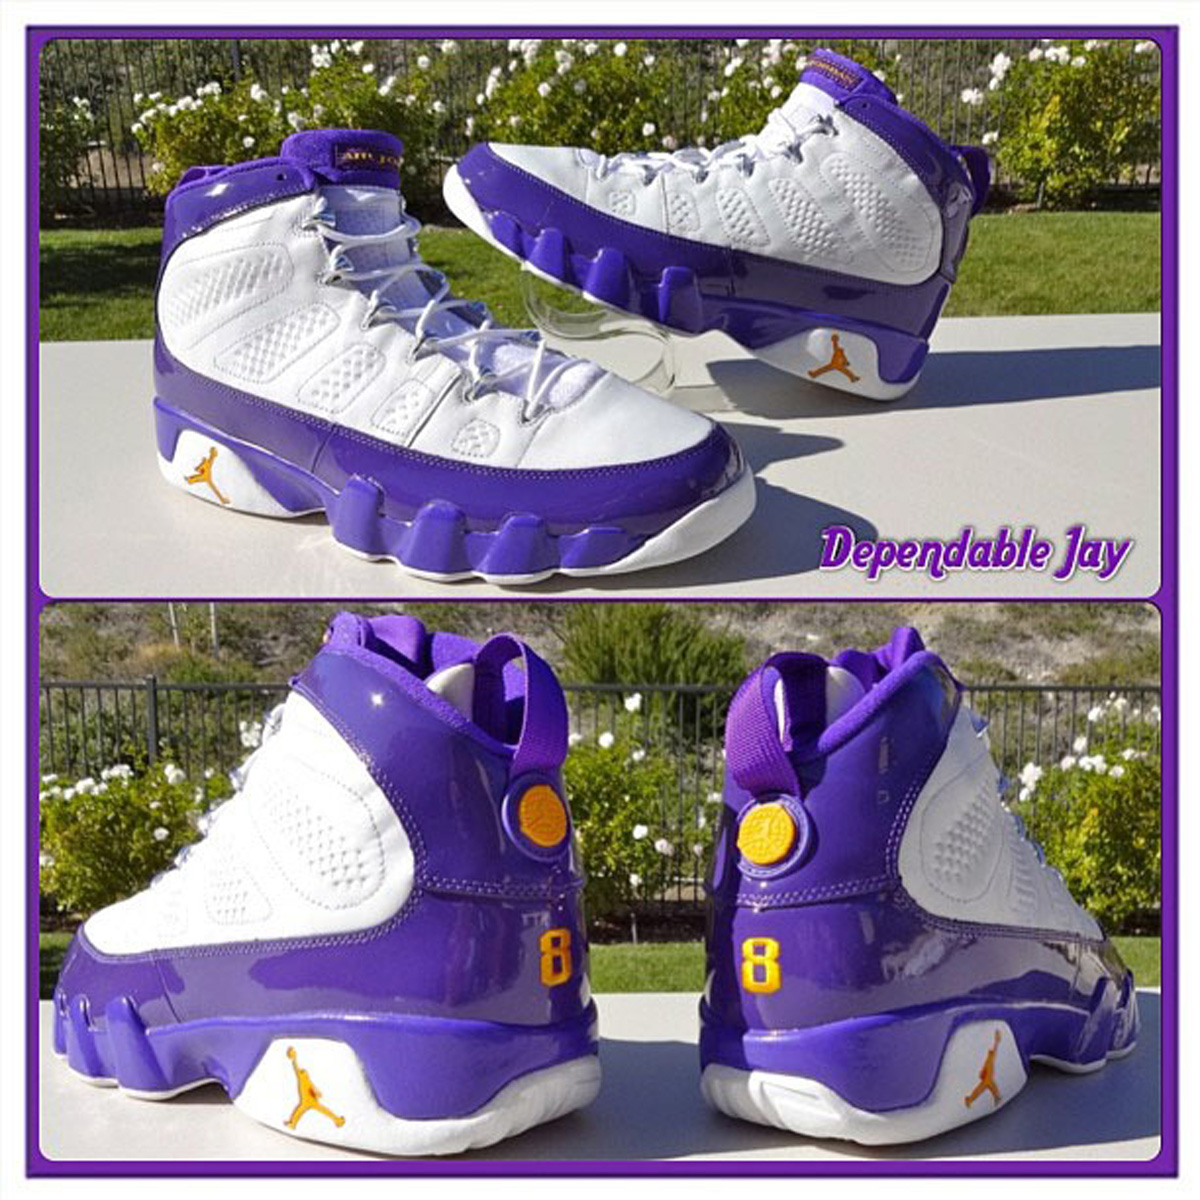 promo code f268e 1b406 There s Another Air Jordan Kobe Bryant Player Exclusive Releasing This Year